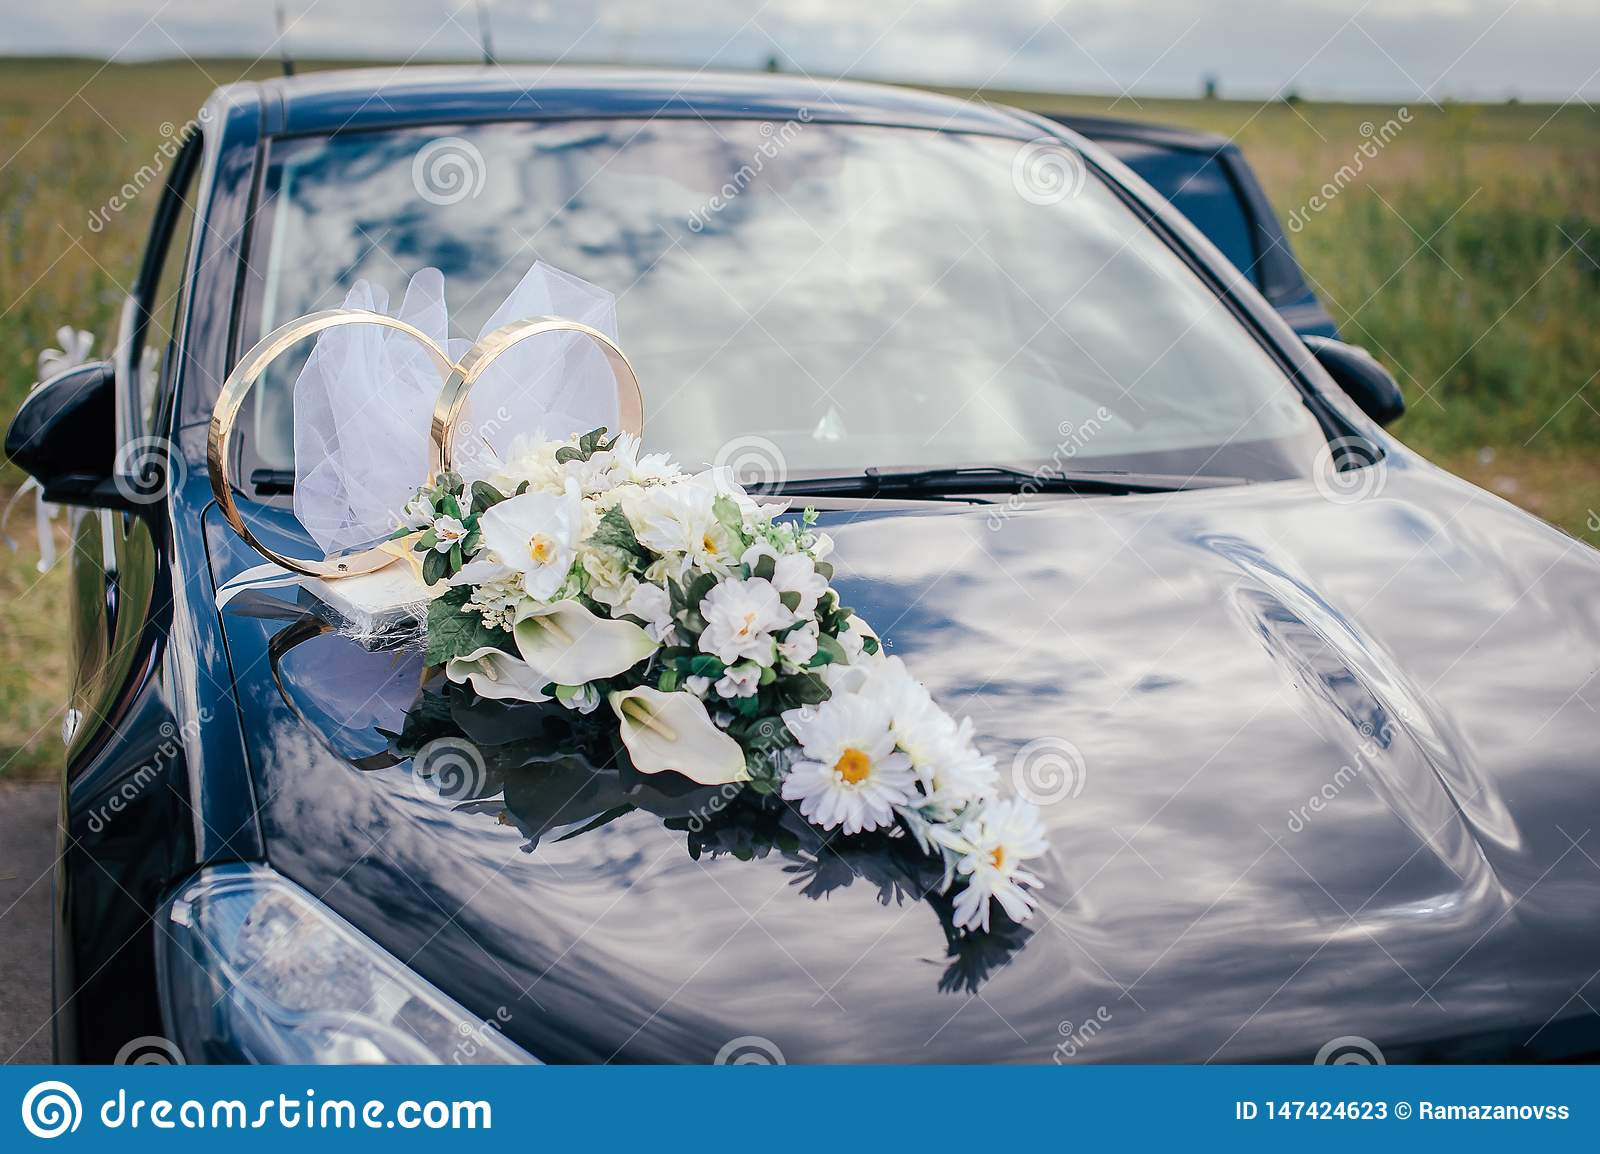 White flowers and wedding rings on the hood of the black car